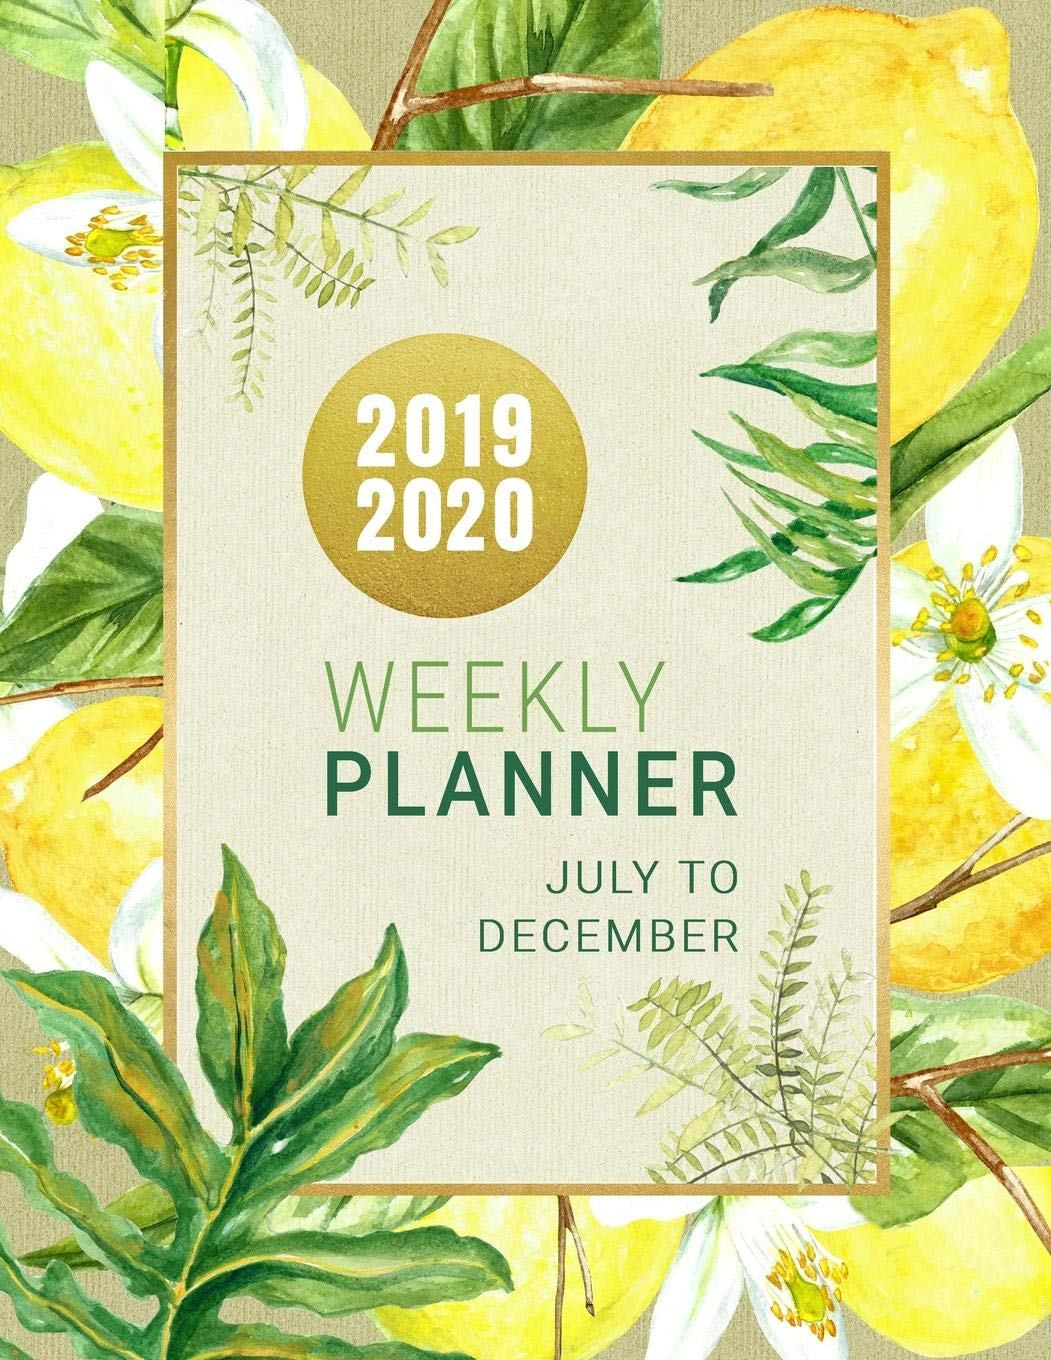 2019 2020  Lemon Planner 18 Month Weekly Monthly July 2019   December 2020 8.5x11   Large Artsy Calendar Organizer For Women With Notes Section + Dot Grid Pages   Tropical Fruit Palm Leaves Art Design